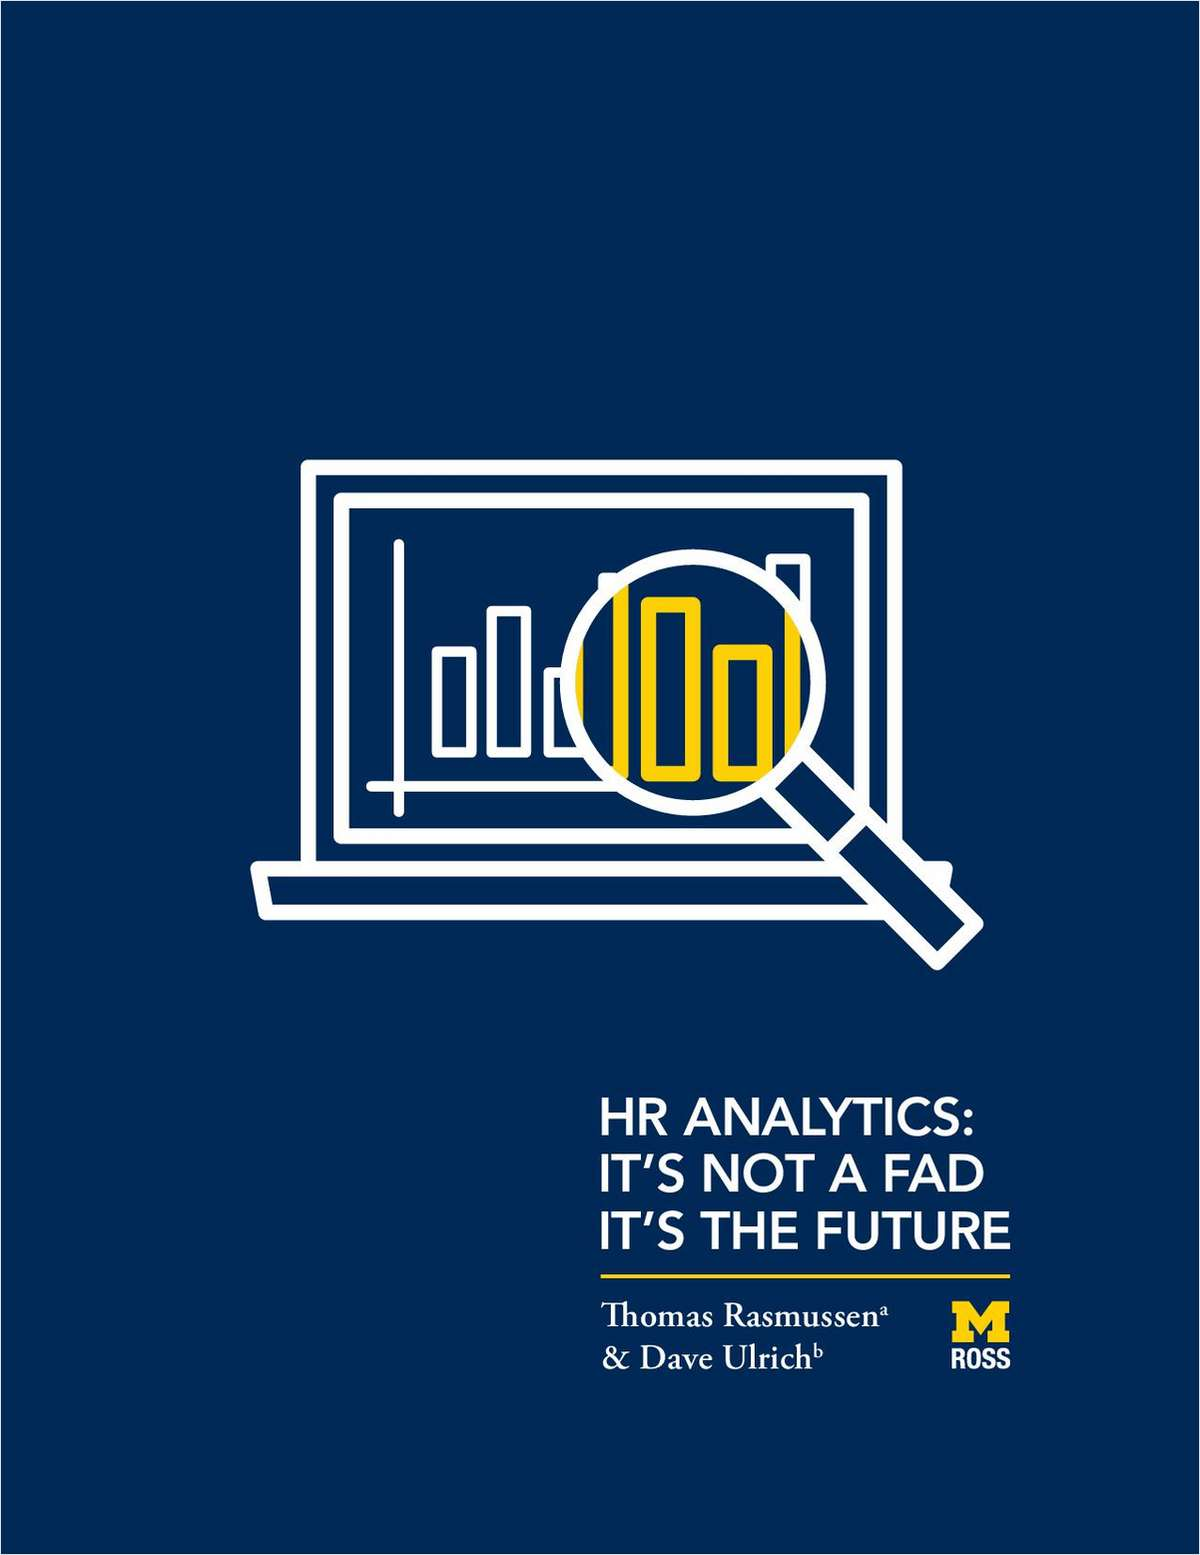 HR Analytics: It's Not A Fad. It's The Future.